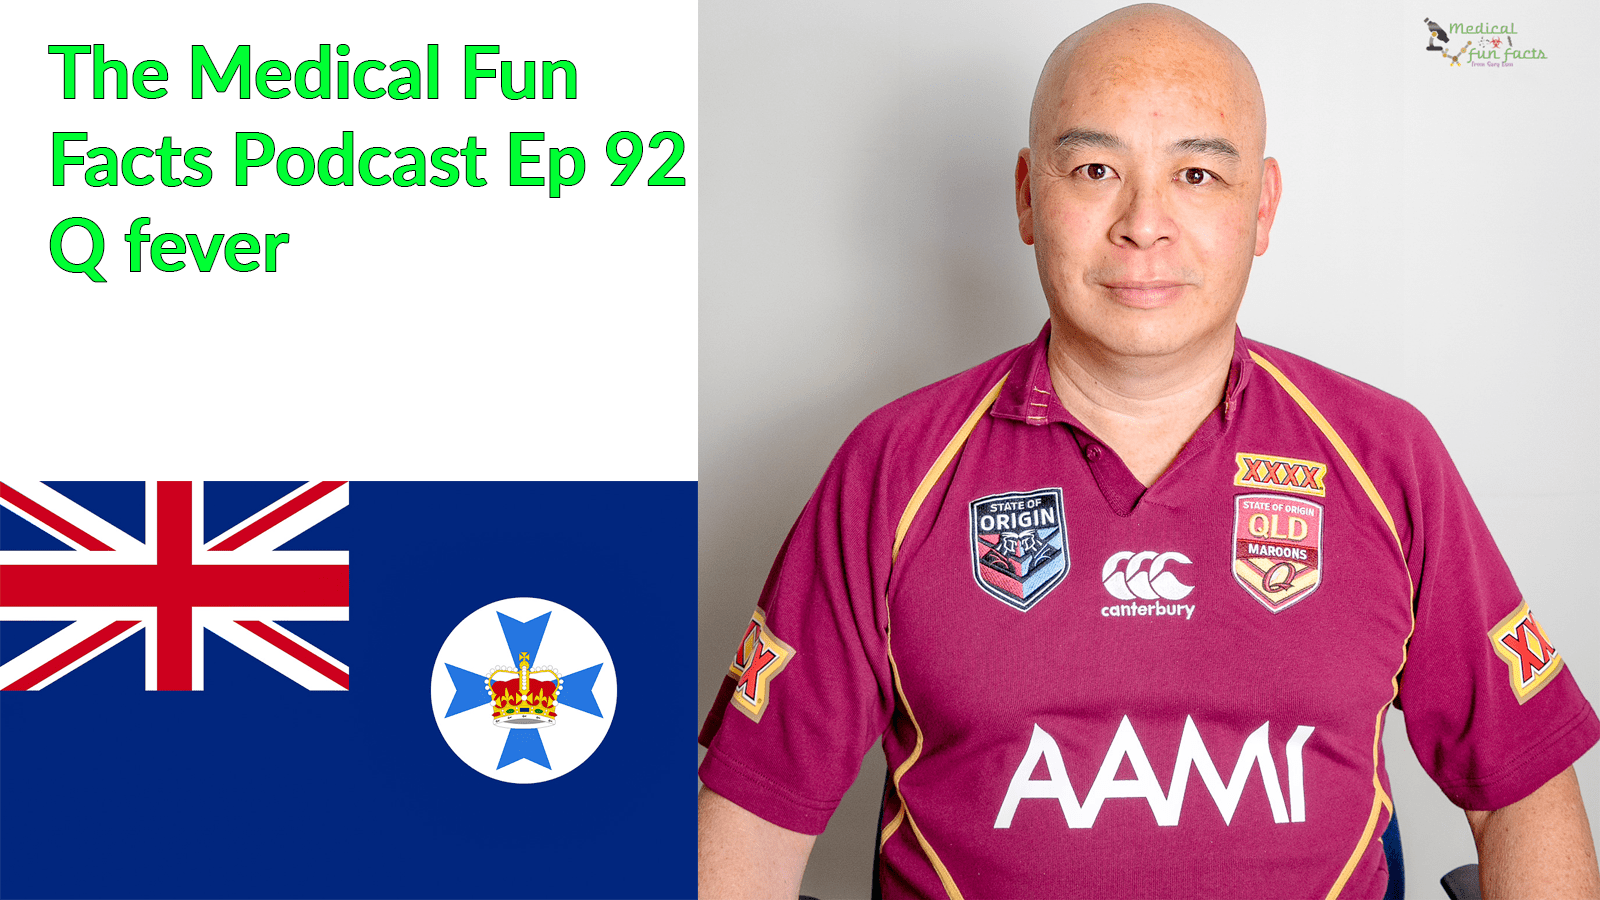 The Medical Fun Facts Podcast episode 92 Q fever and Coxiella burnetii Gary Lum and Queensland flag